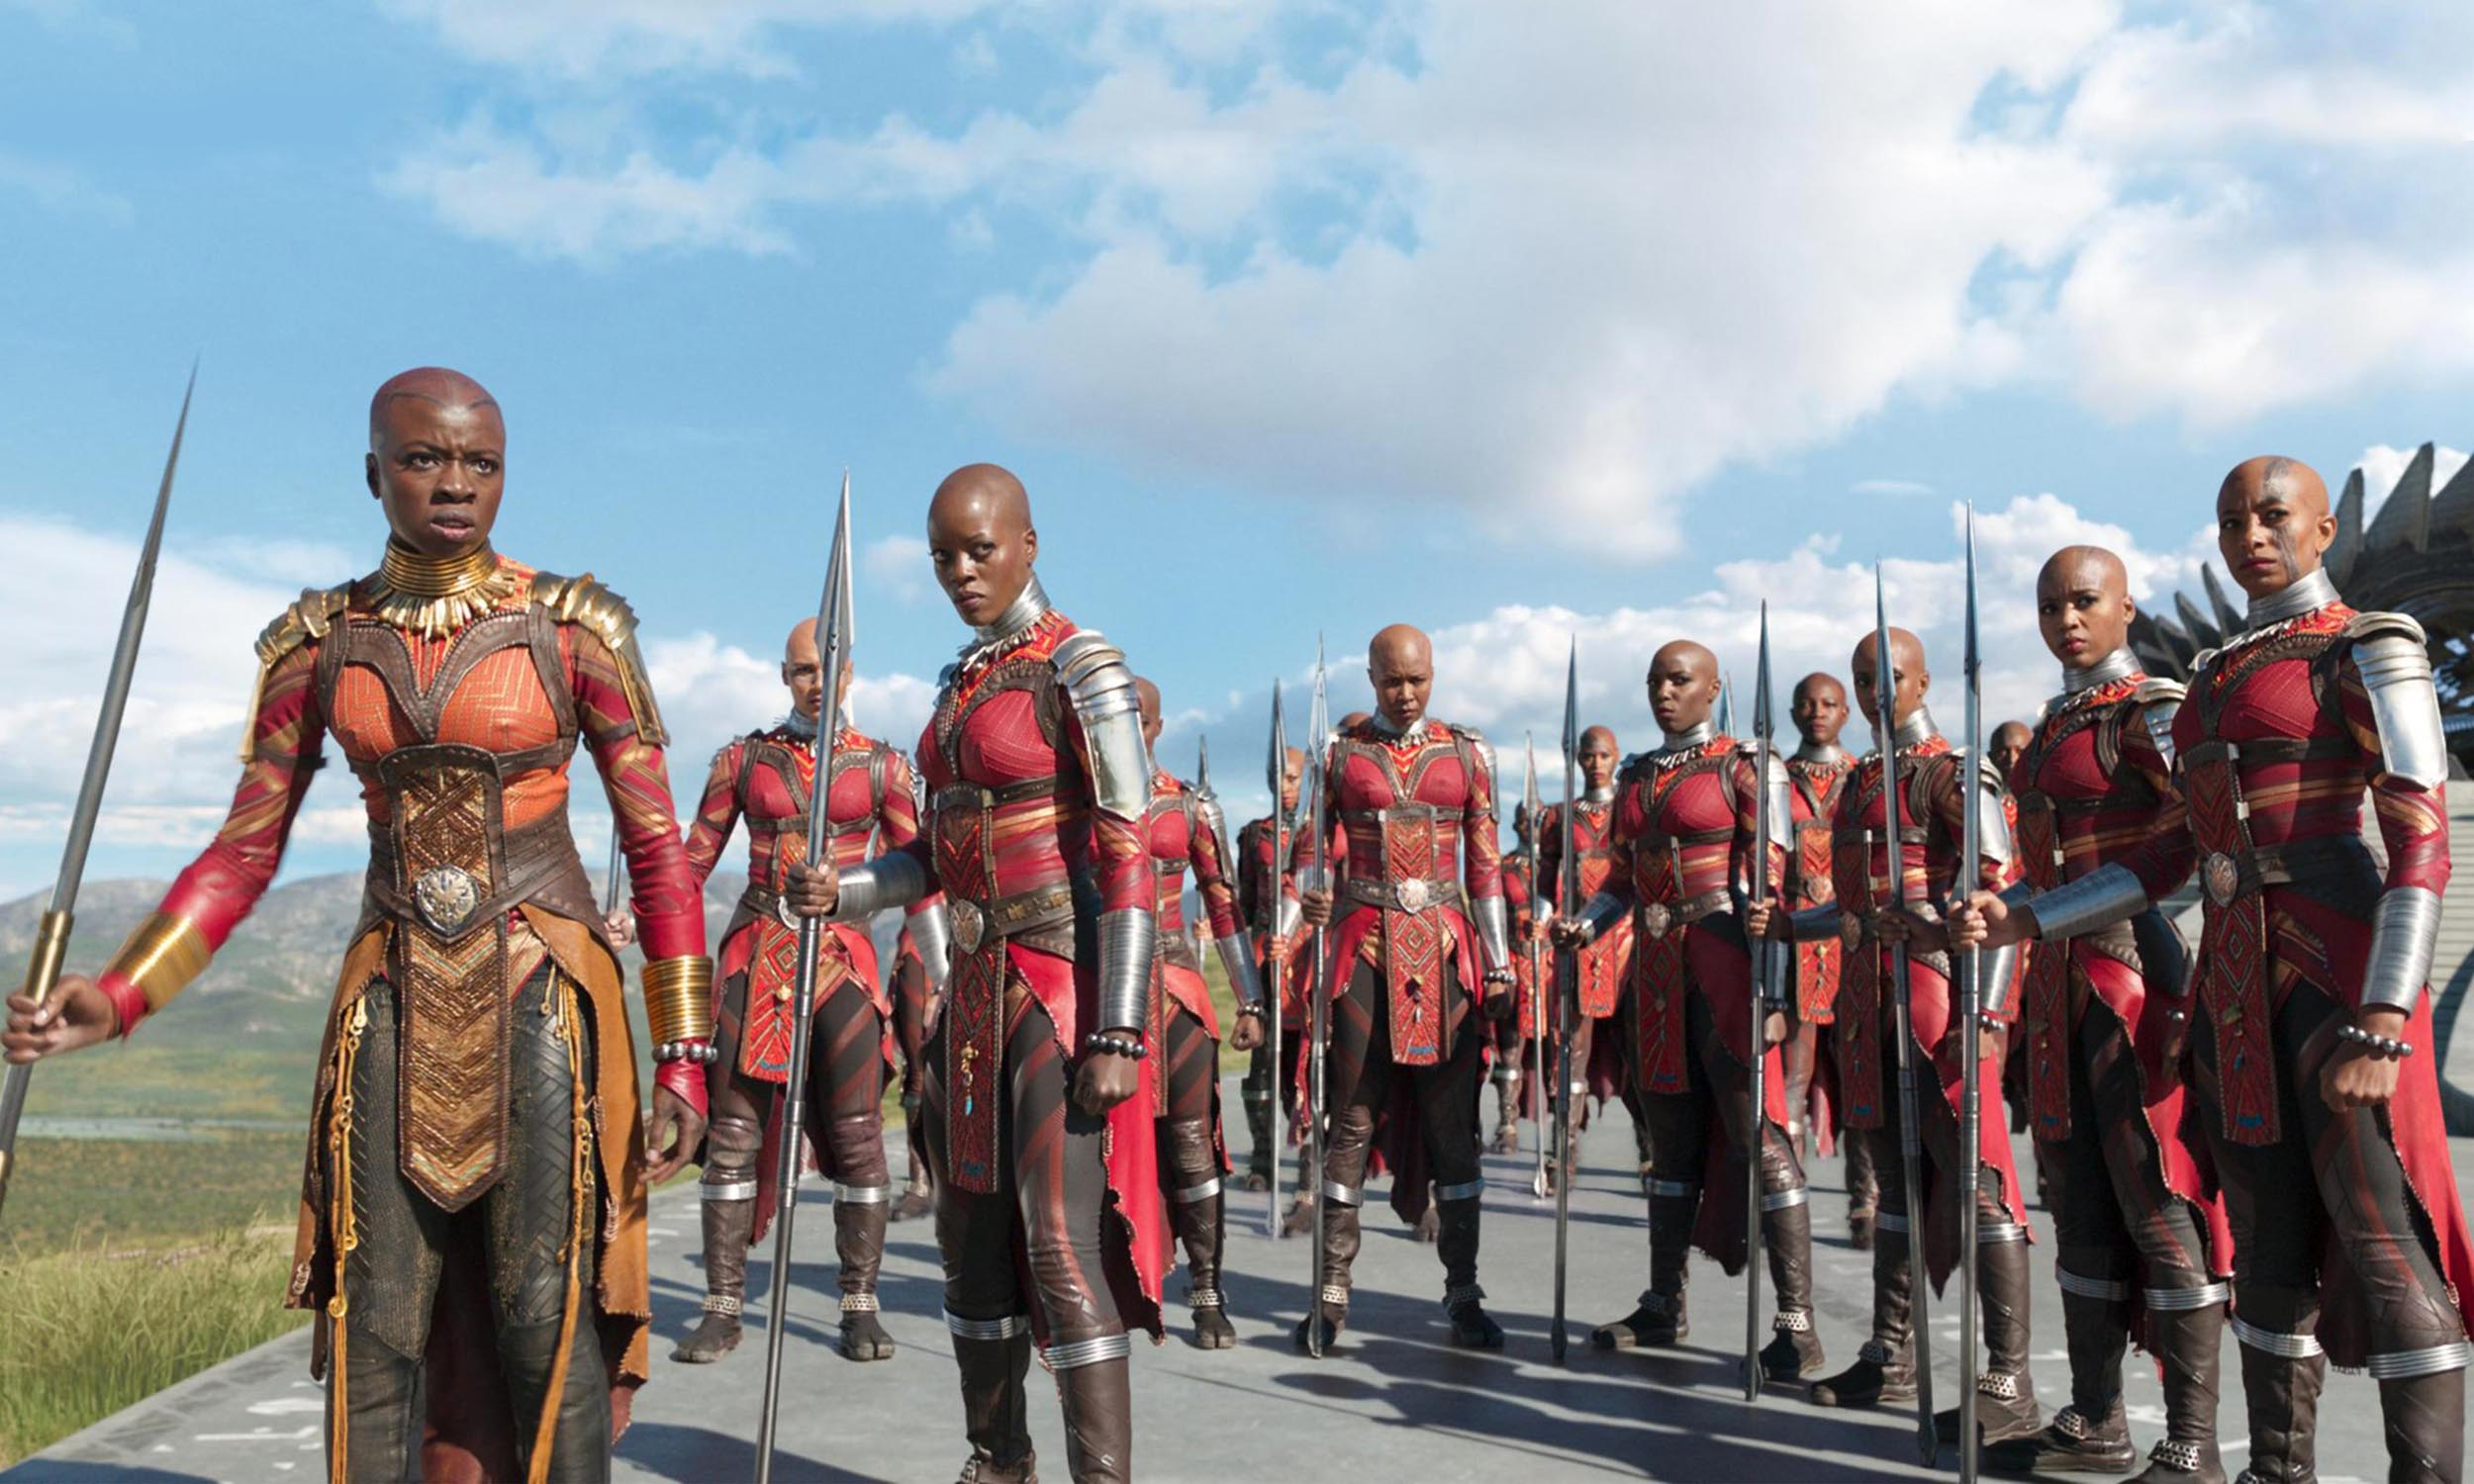 Black Panther - Scene from Marvel Studios Black Panther - Dora Milaje lead by Okoye - Danai Gurira. #WakandaForever, #WhatBlackPantherMeansToYou